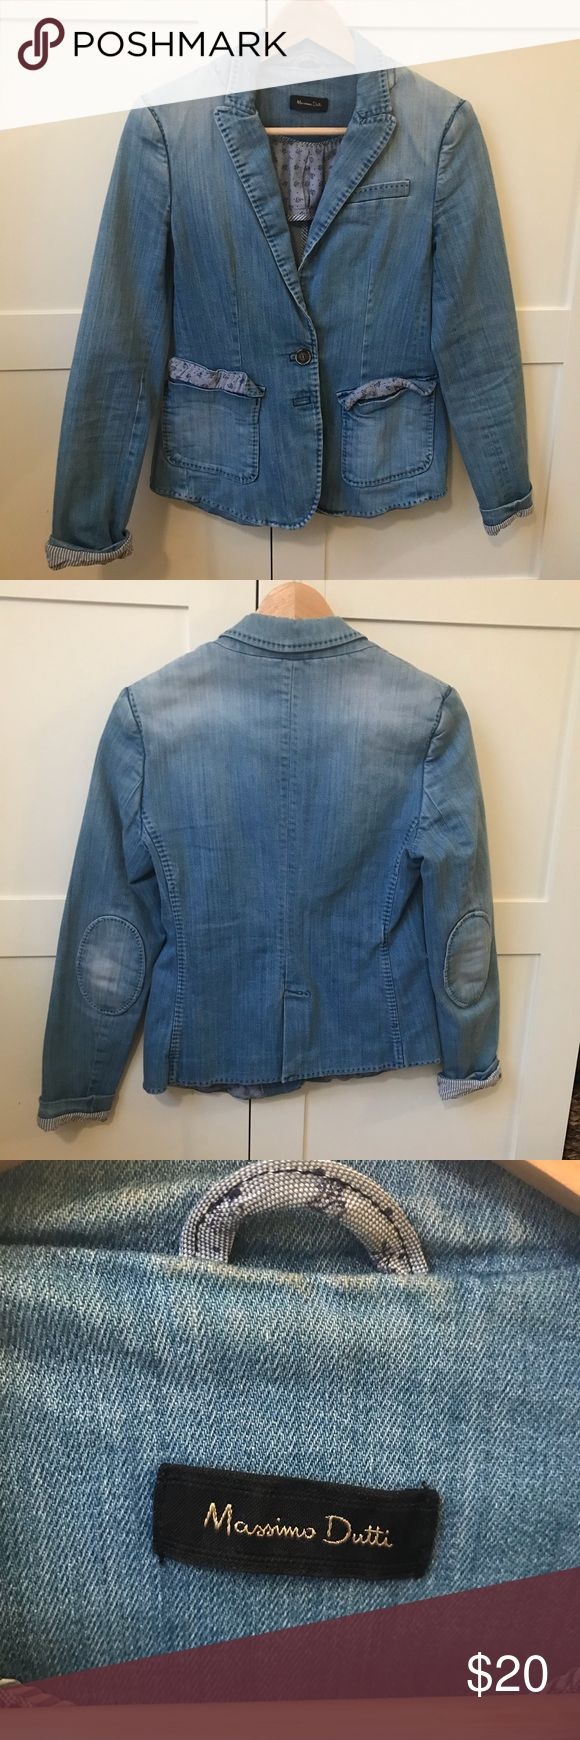 Massimo Dutti Faded Denim Blazer Massimo Dutti faded denim blazer. Purchased directly from their store in Italy! Size small.   Extremely versatile! Perfect as an extra layer in the warmer months - looks great over maxi dresses, with linen pants, with shorts, endless options!!!   Open to all offers. Massimo Dutti Jackets & Coats Blazers